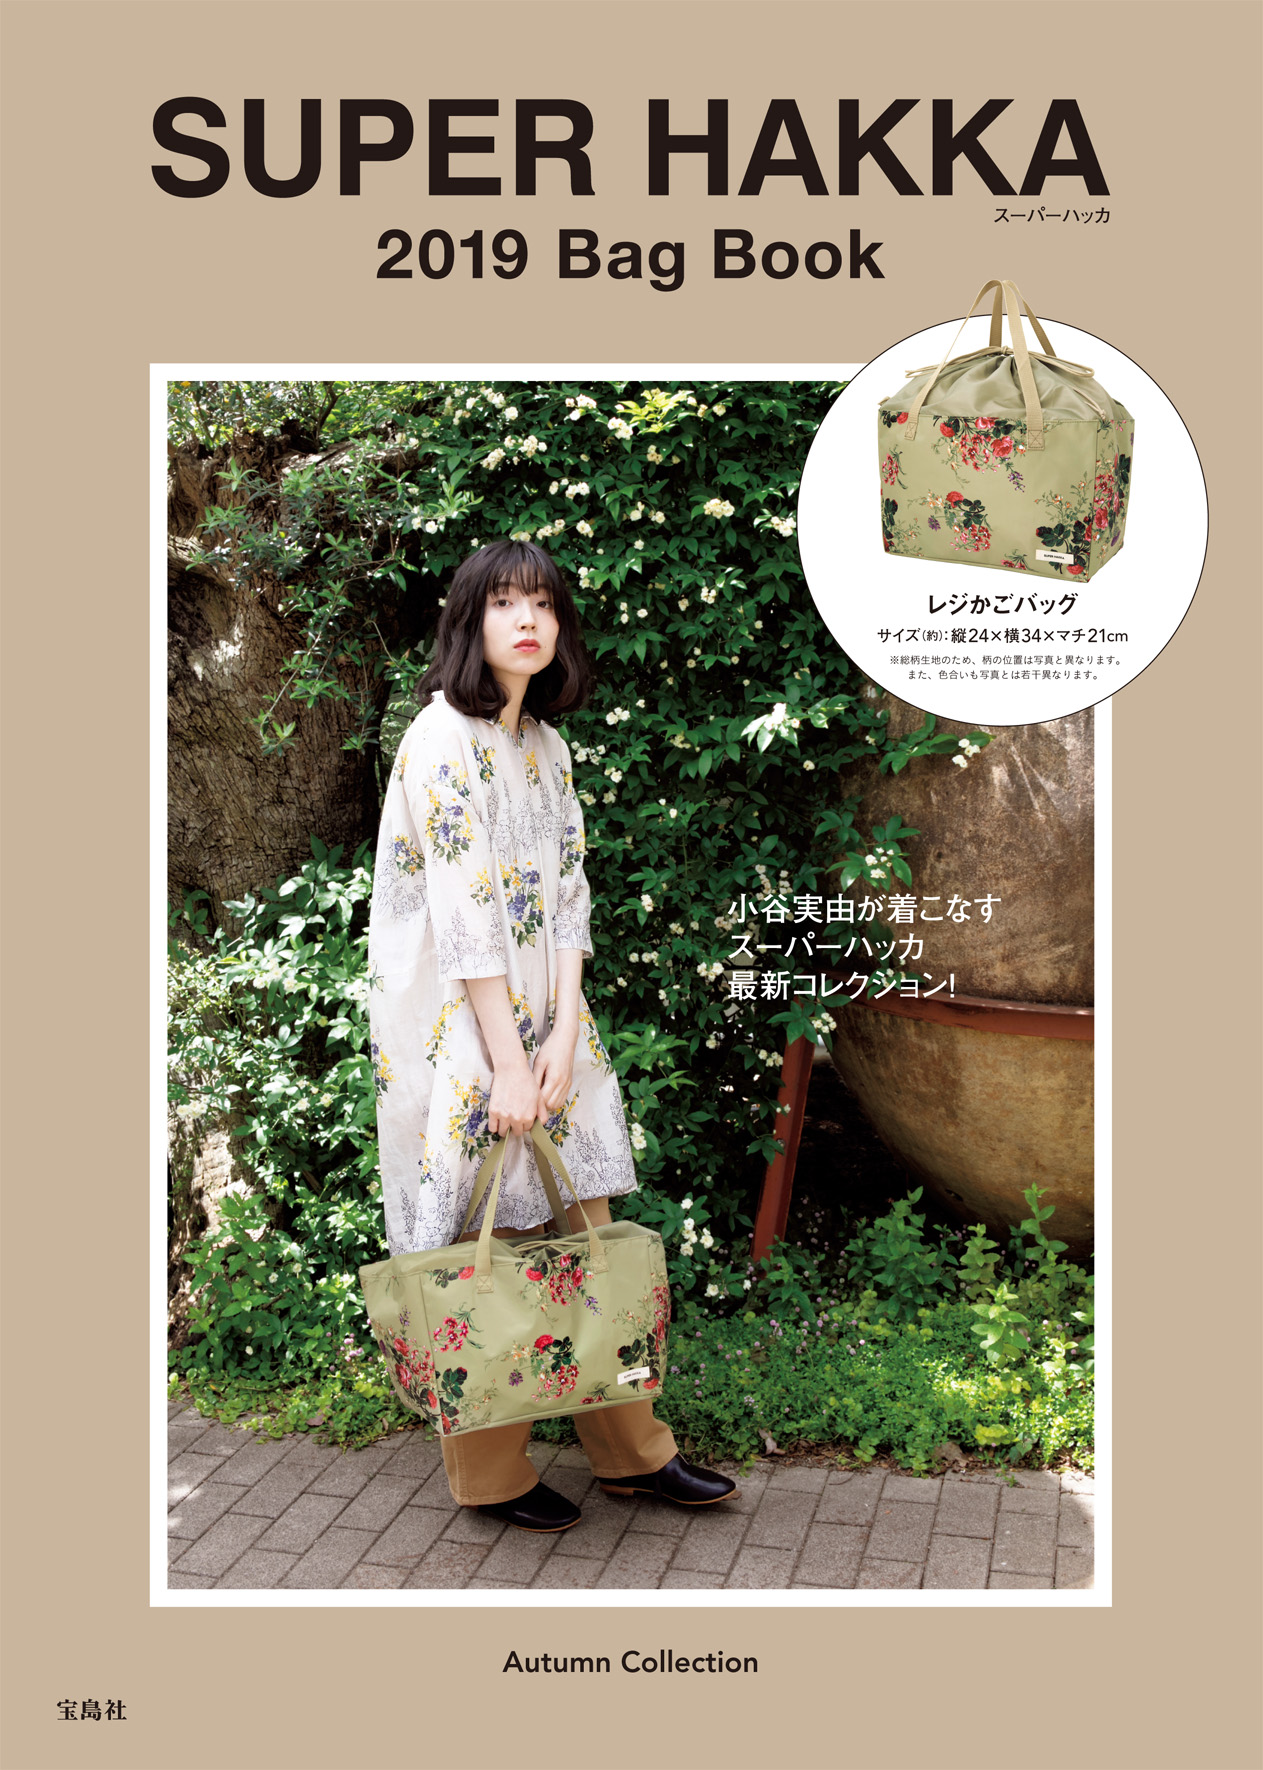 SUPER HAKKA 2019 Bag Book_cover2a